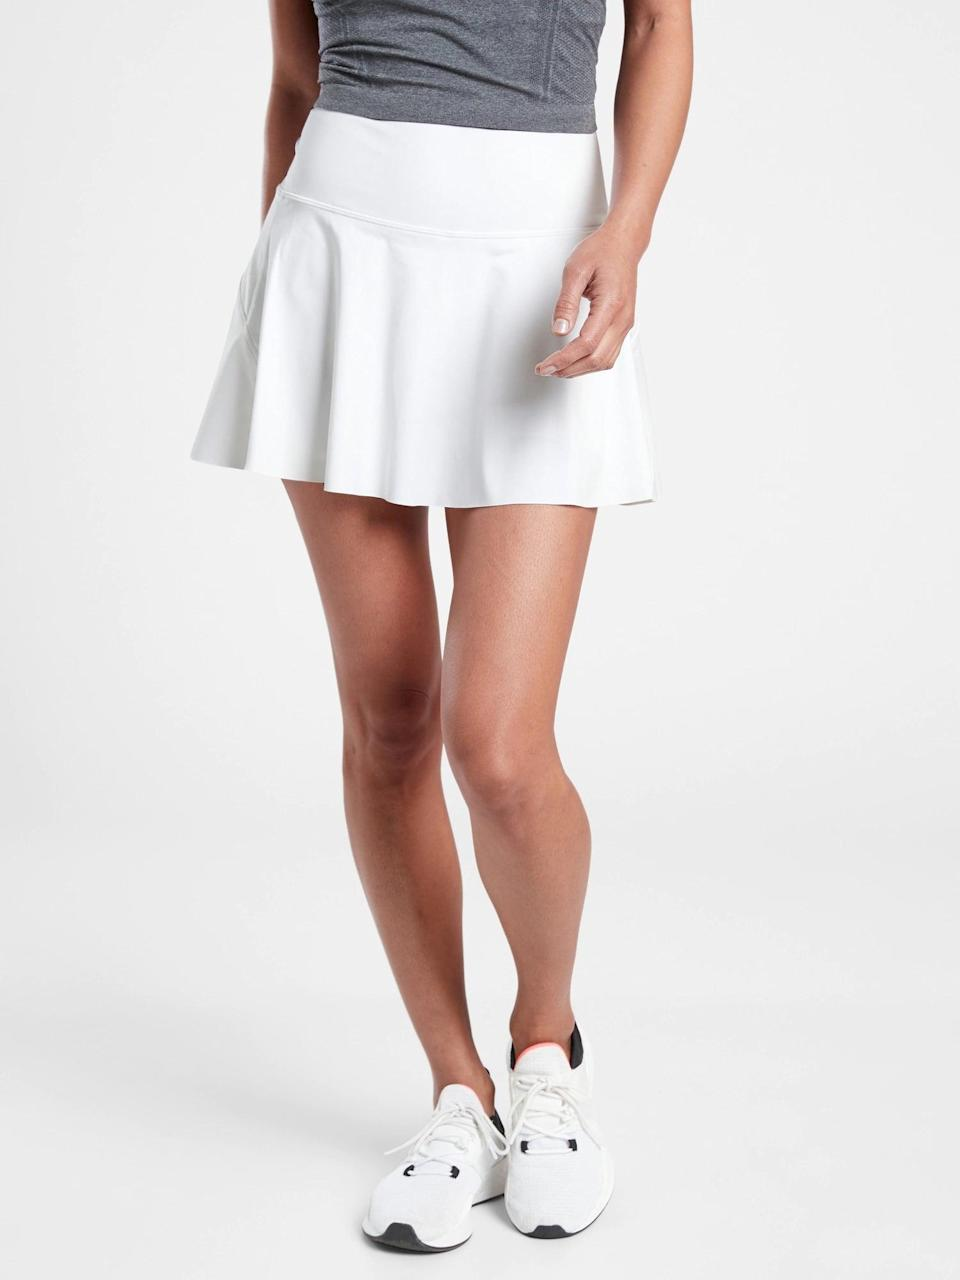 <p>Serve it up in this adorable, easy to move in <span>Athleta Ace Tennis Skort</span> ($69).</p>